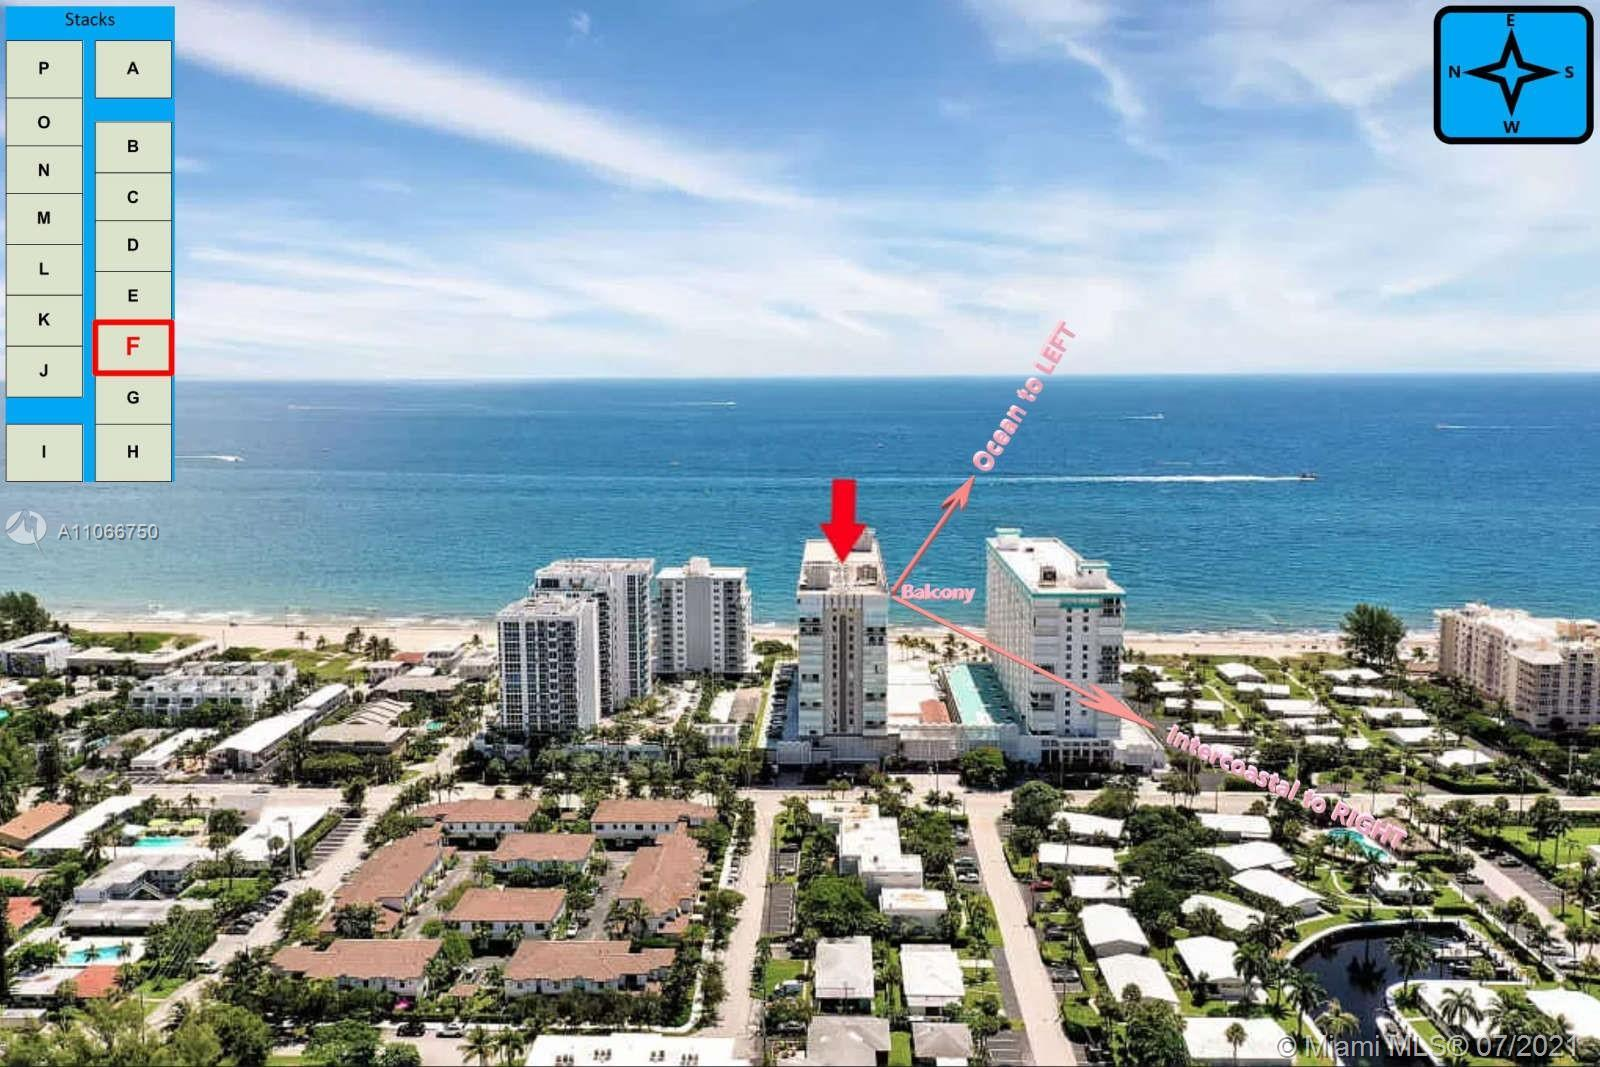 2BD/2BA Condo on the beach. Updated: Kitchen ceiling-high cabinets w/under lights. Baths marbled flo